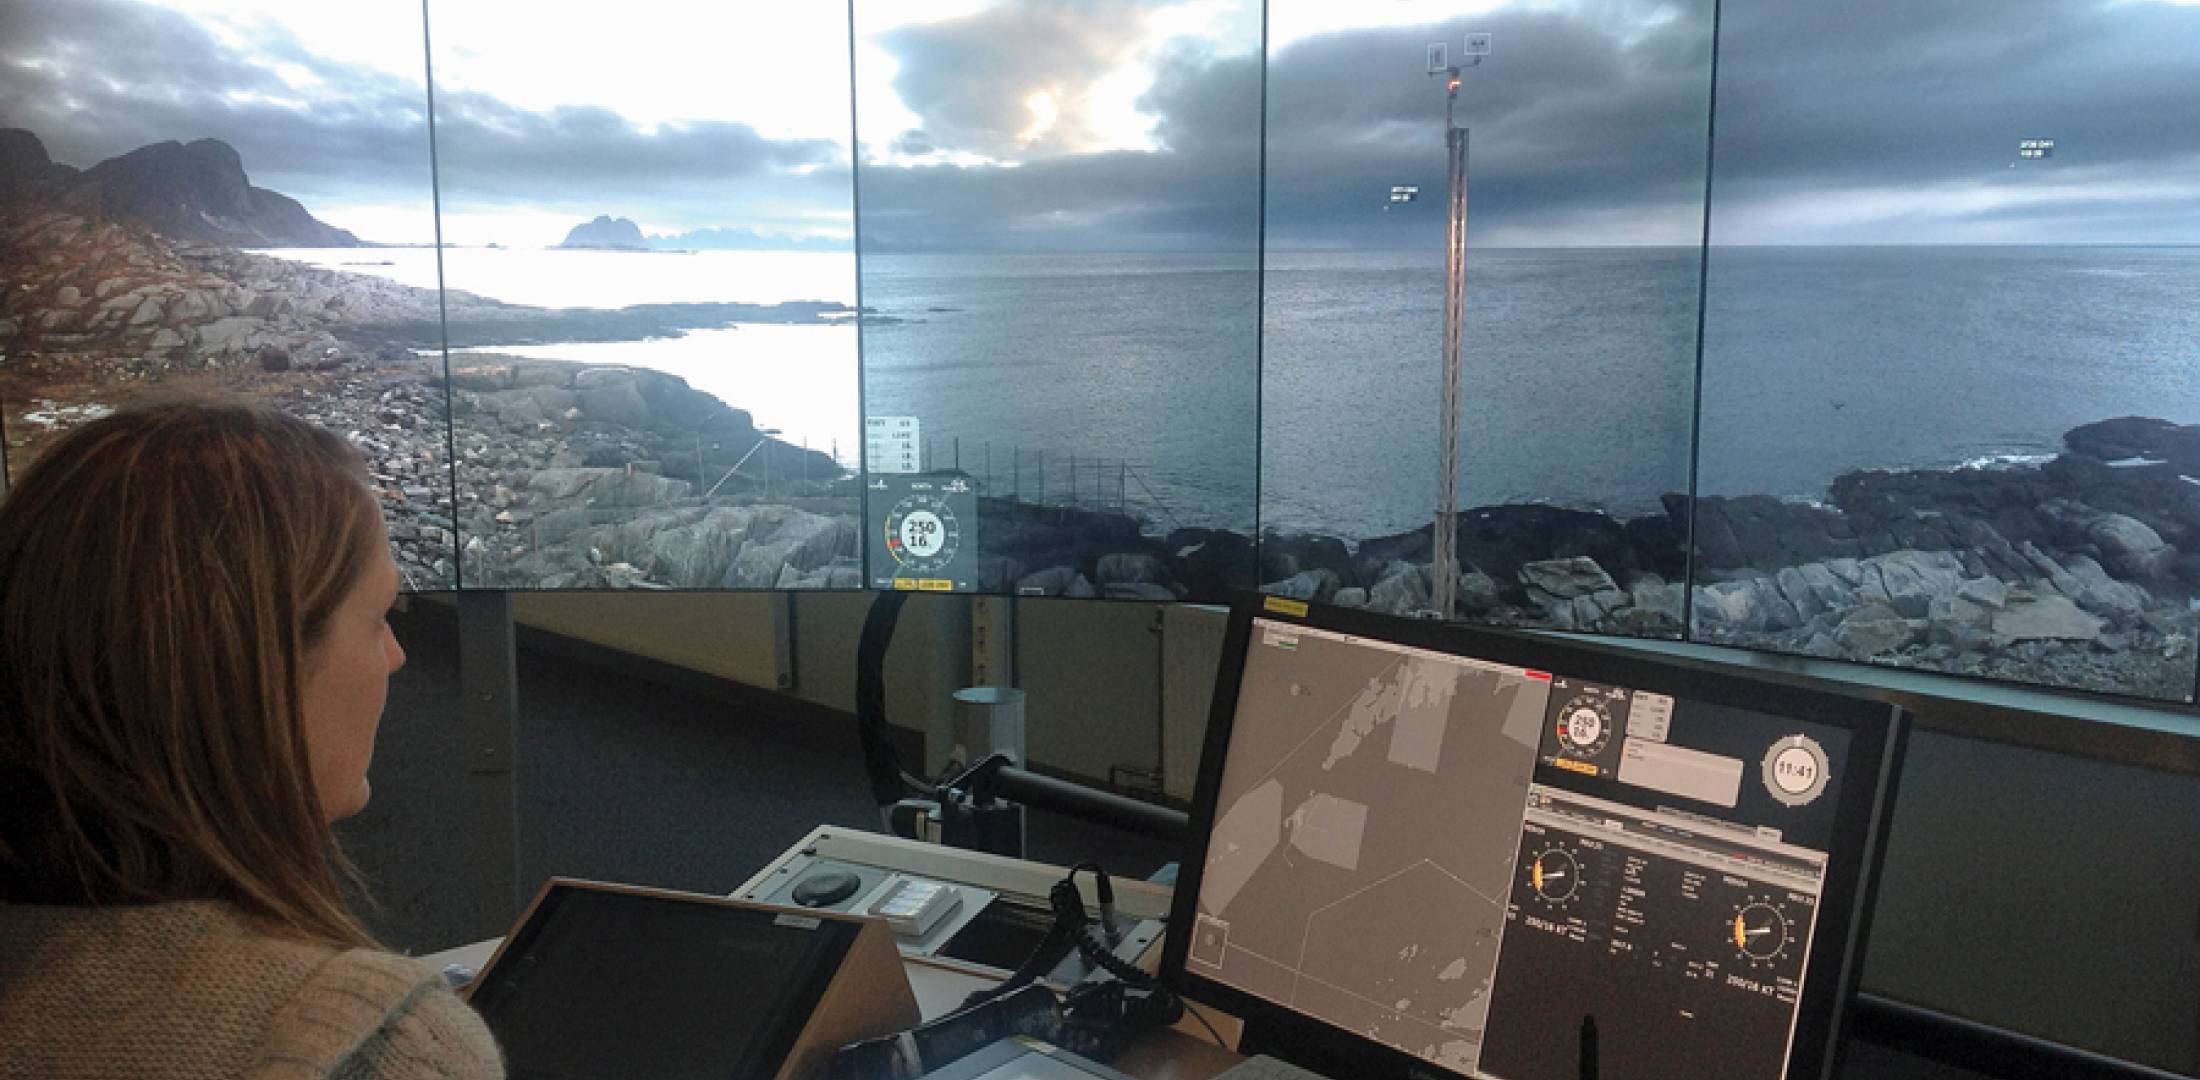 Saab remote tower in Bodo, Norway.